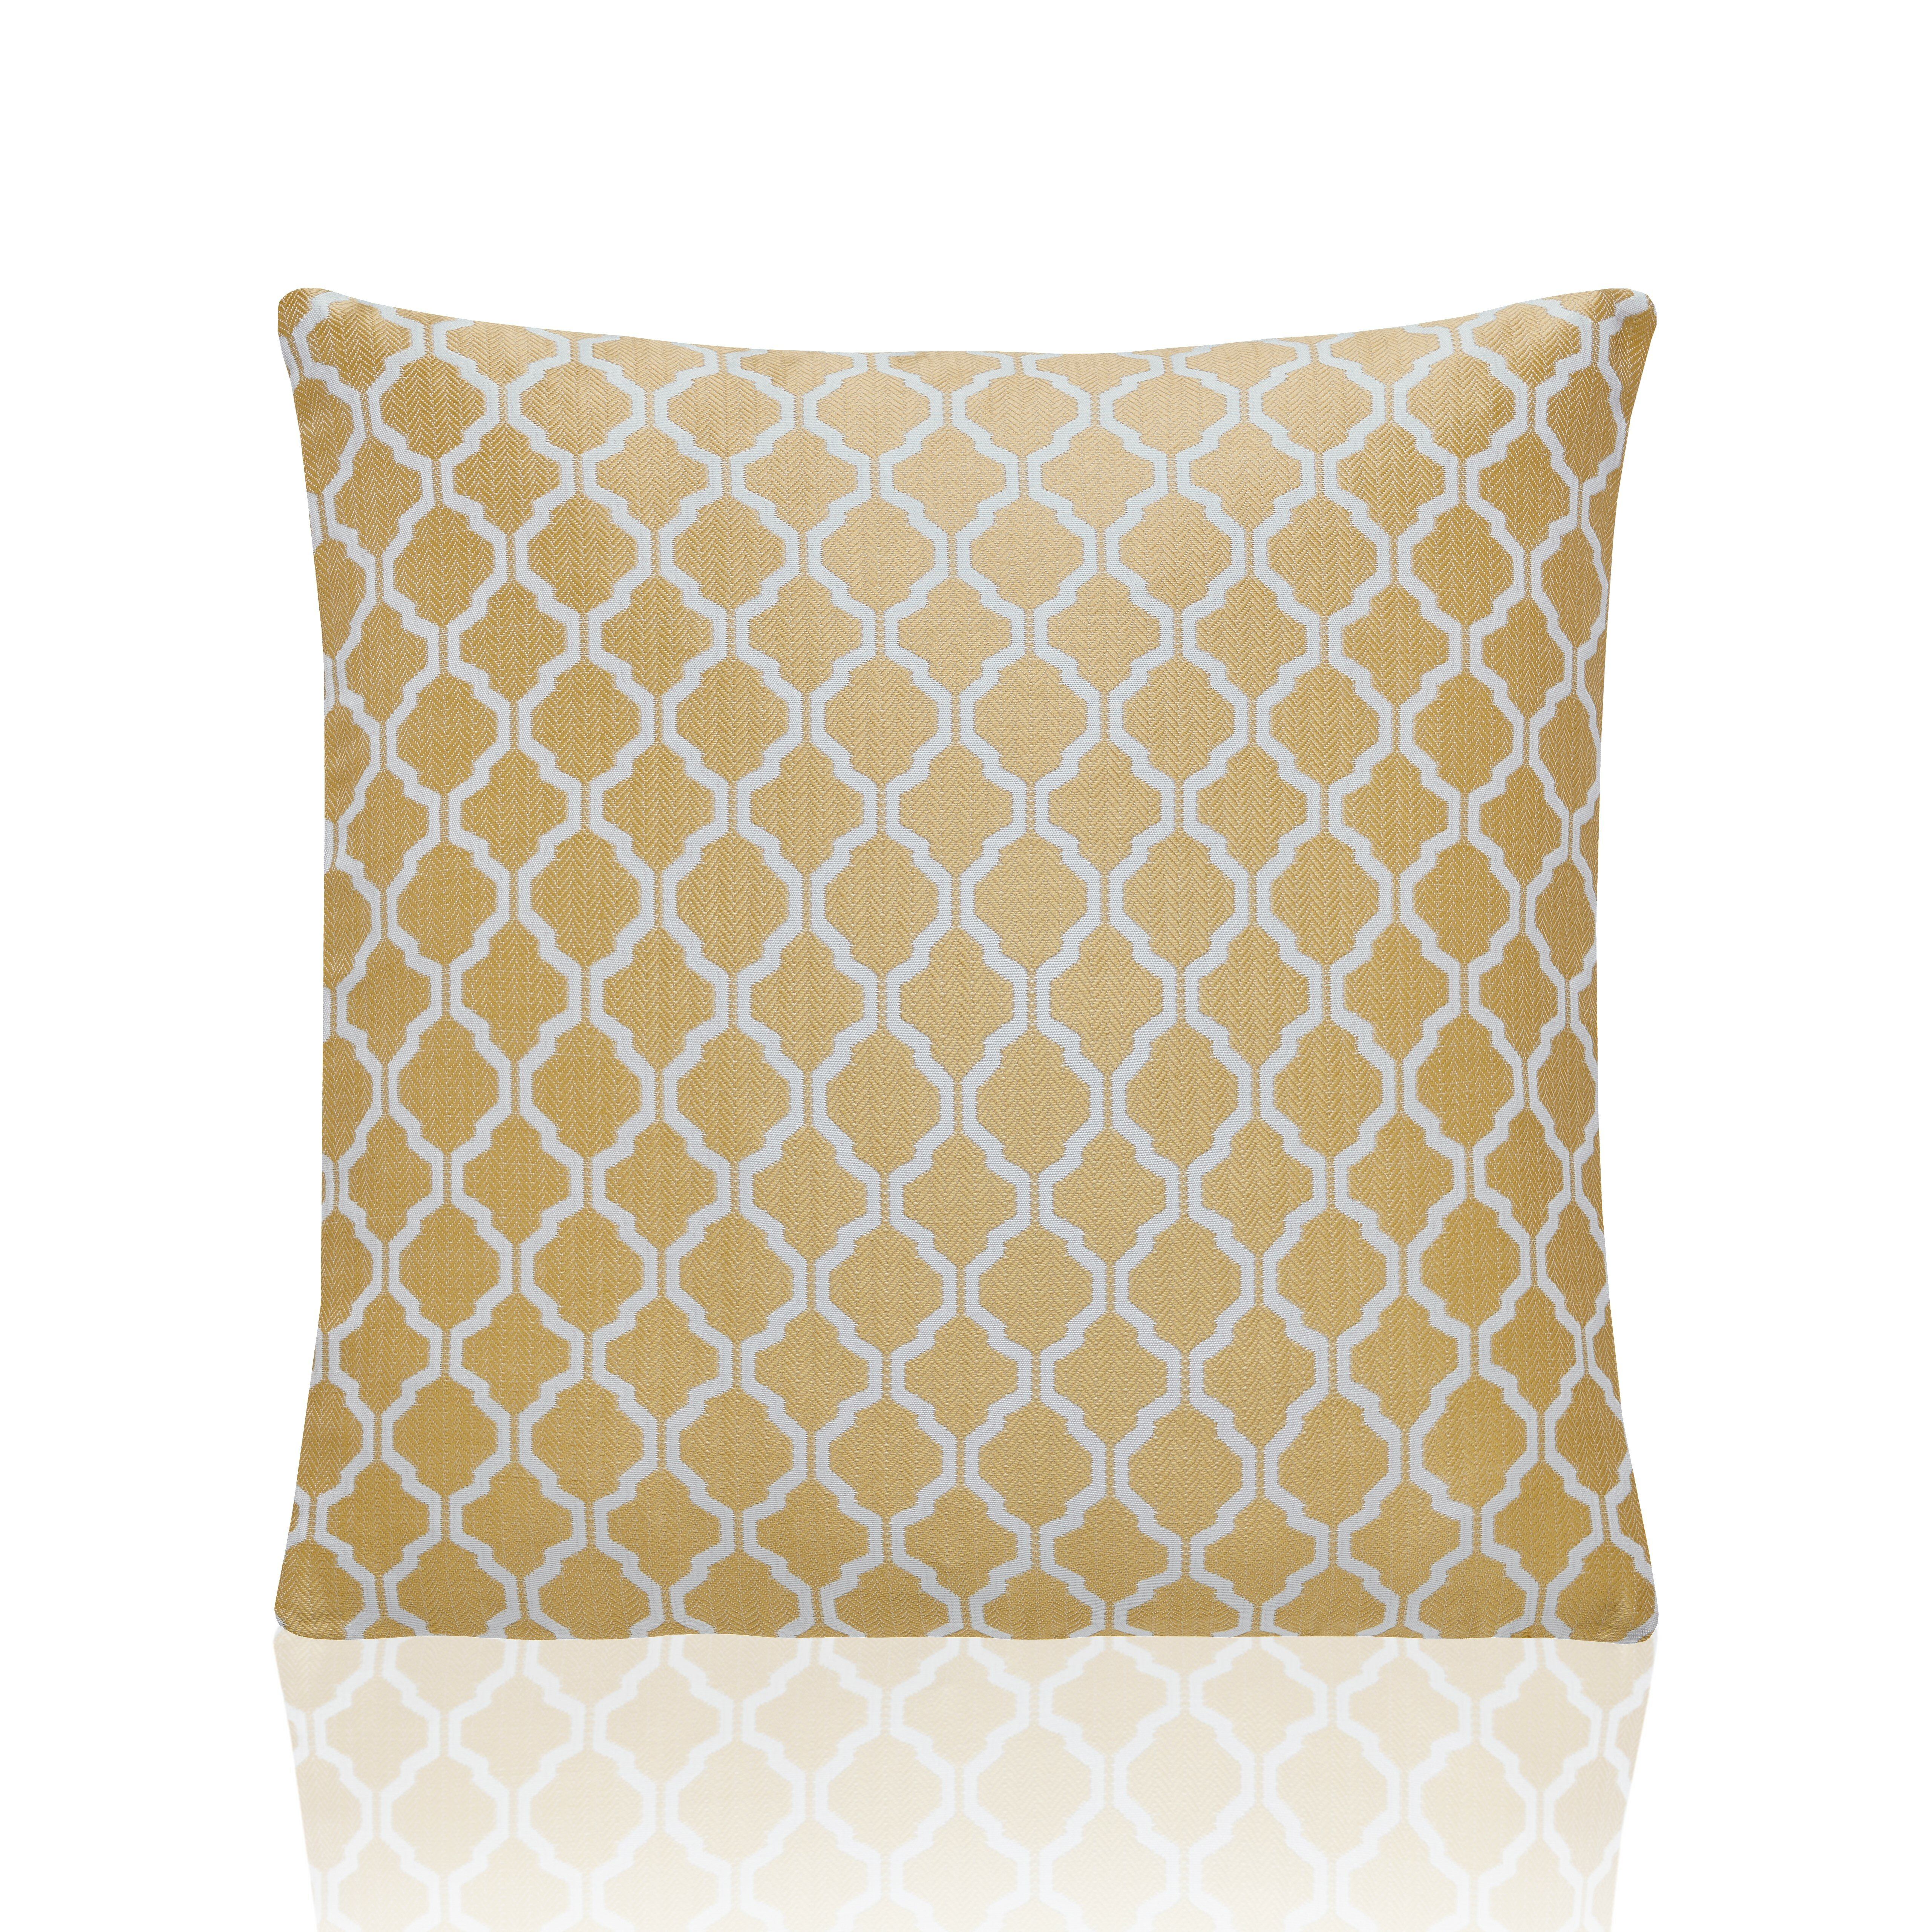 """2 X JACQUARD MOROCCAN-STYLE PATTERNED SILVER WHITE 22/"""" 55CM CUSHION COVERS"""